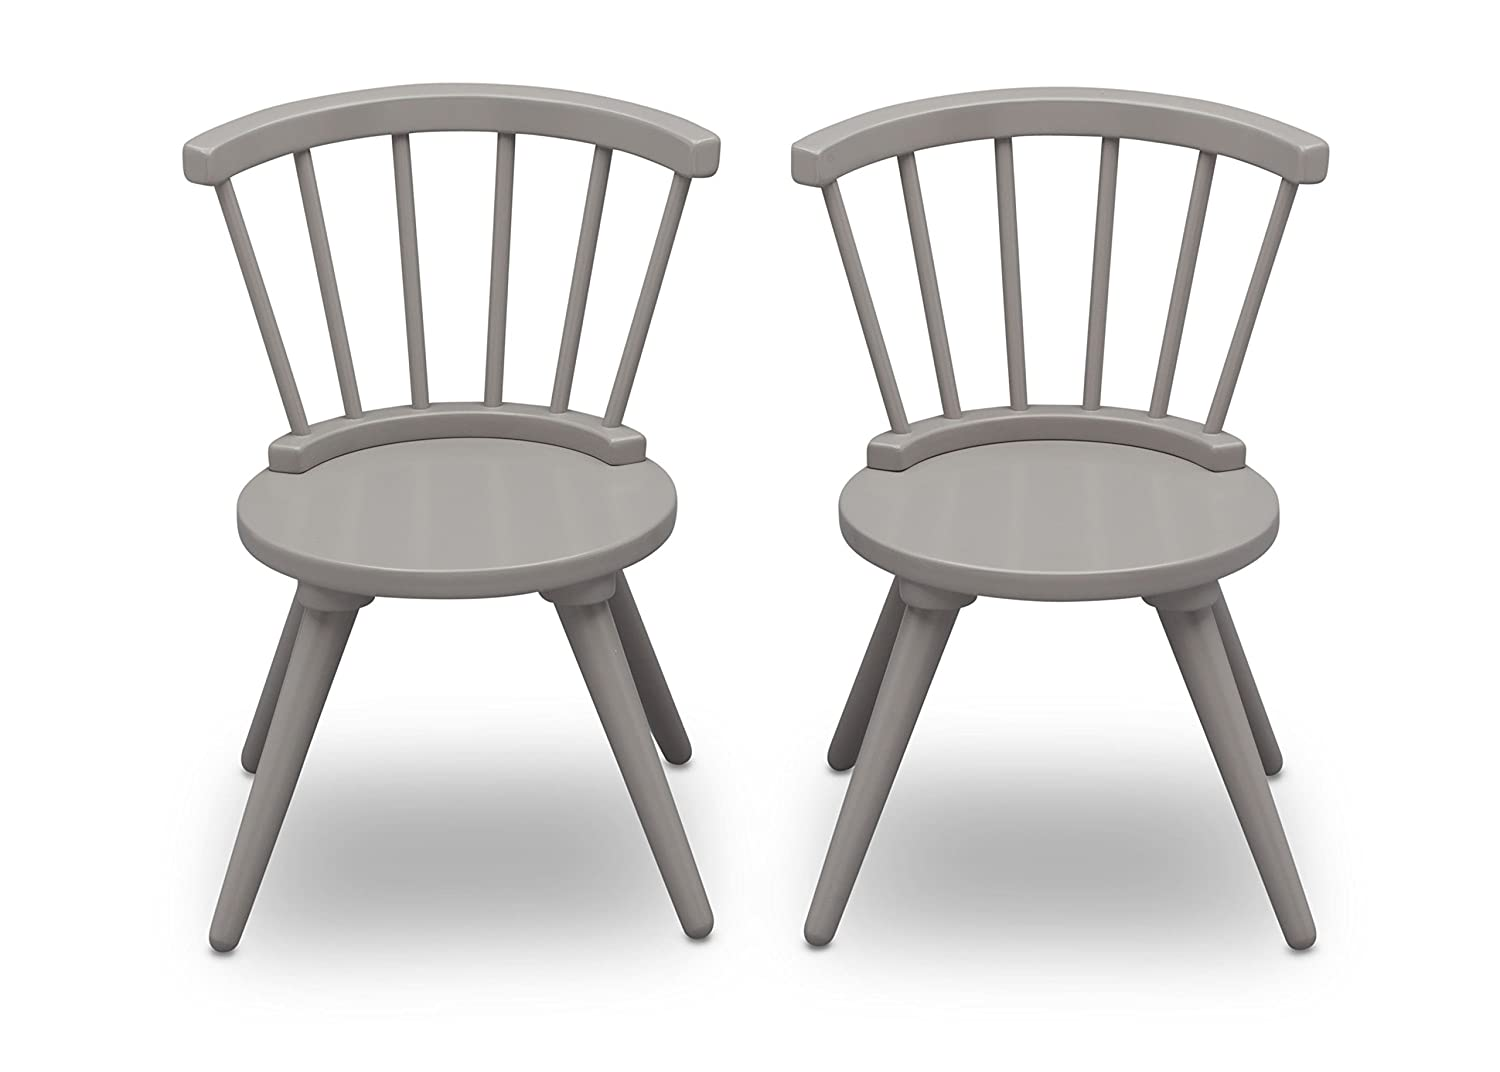 6da8ca93837 Delta Children Windsor Kids Wood Table and Chair Set  (2 Chairs Included )